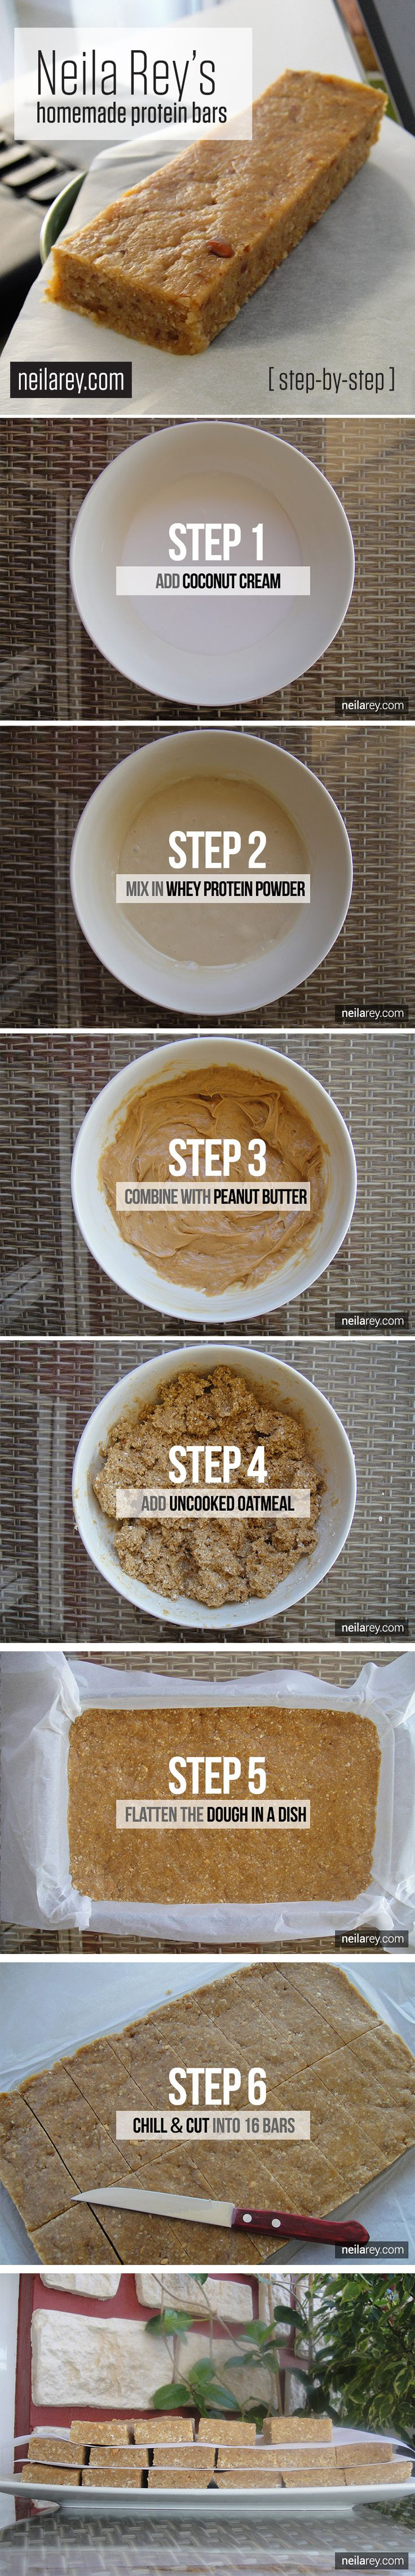 "Homemade Protein Bars / Step-by-Step Recipe #healtyhrecipe #recipe #proteinbars                                                                                                                                                <button class=""Button Module borderless hasText vaseButton"" type=""button"">       <span class=""buttonText"">                          More         </span>          </button>"